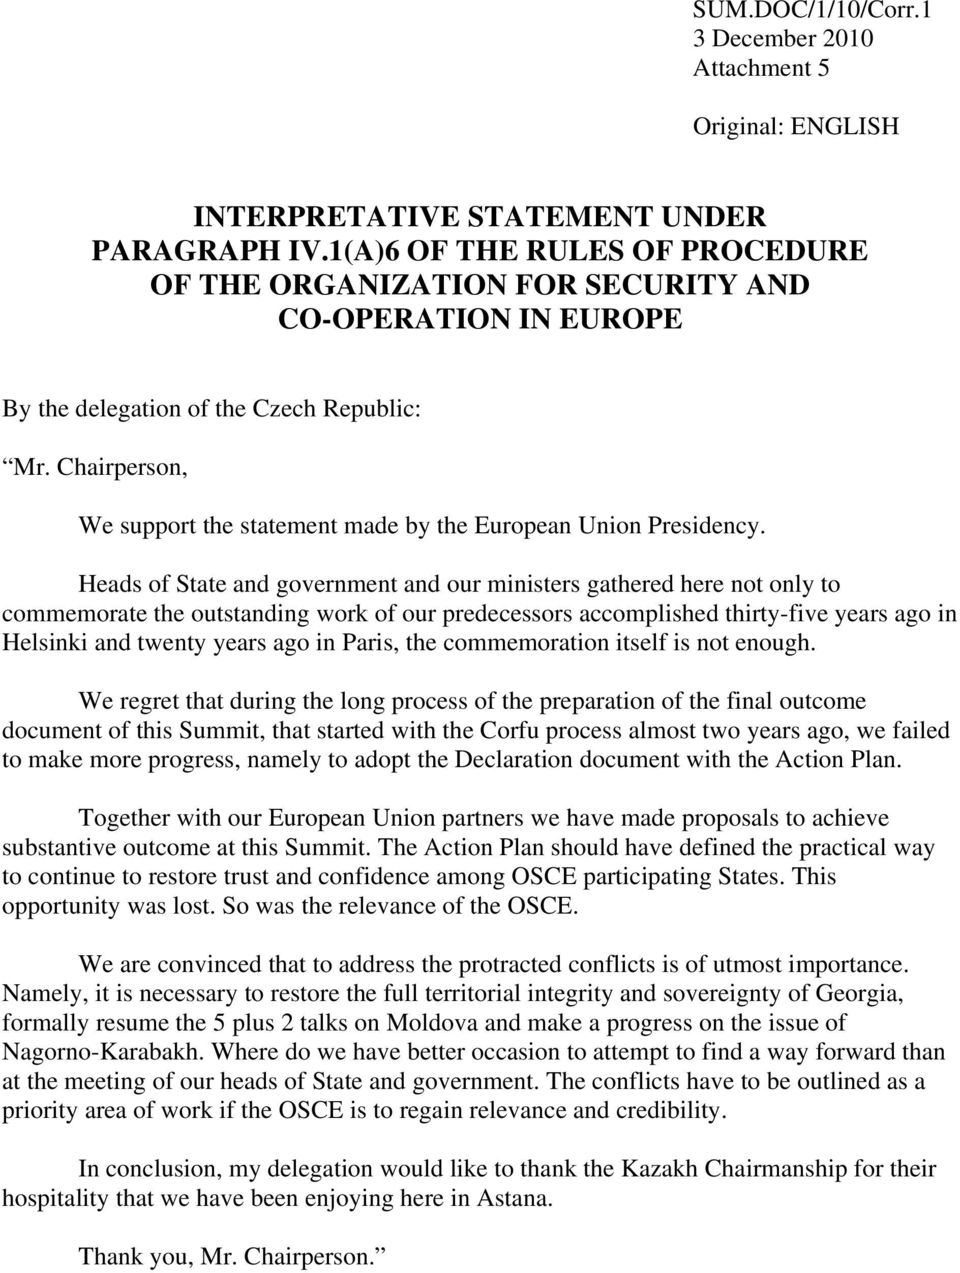 Chairperson, We support the statement made by the European Union Presidency.